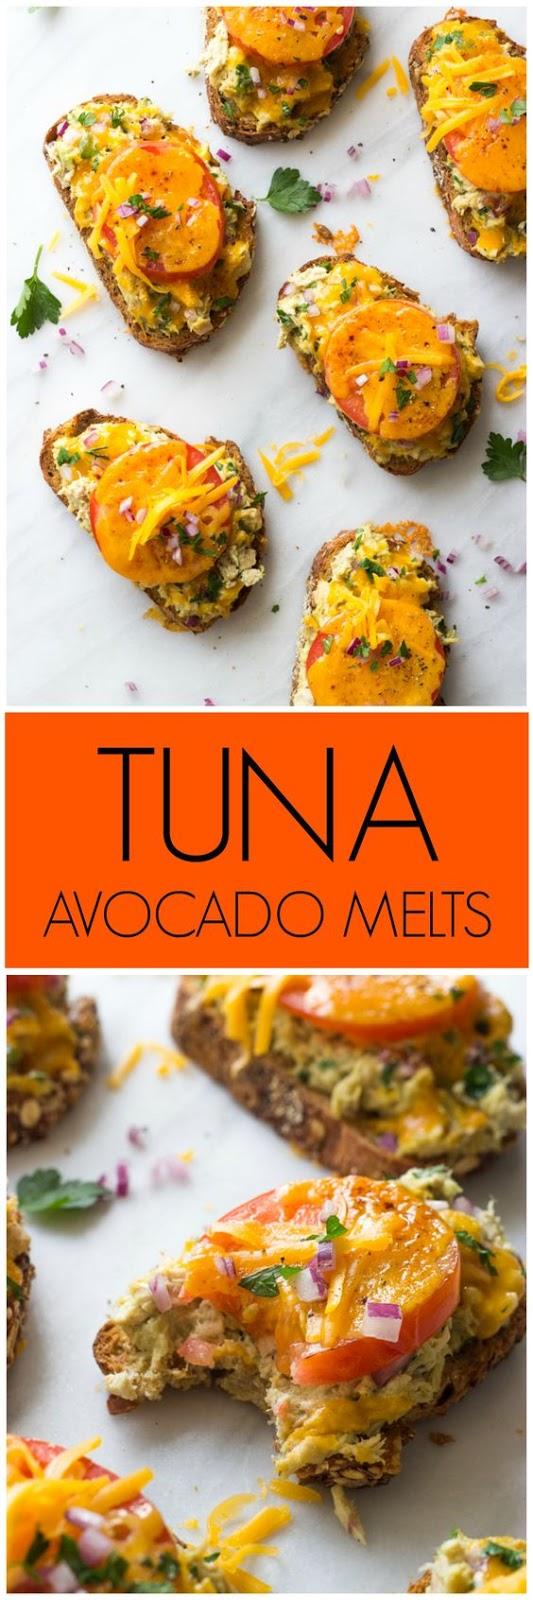 Tuna Avocado Melts